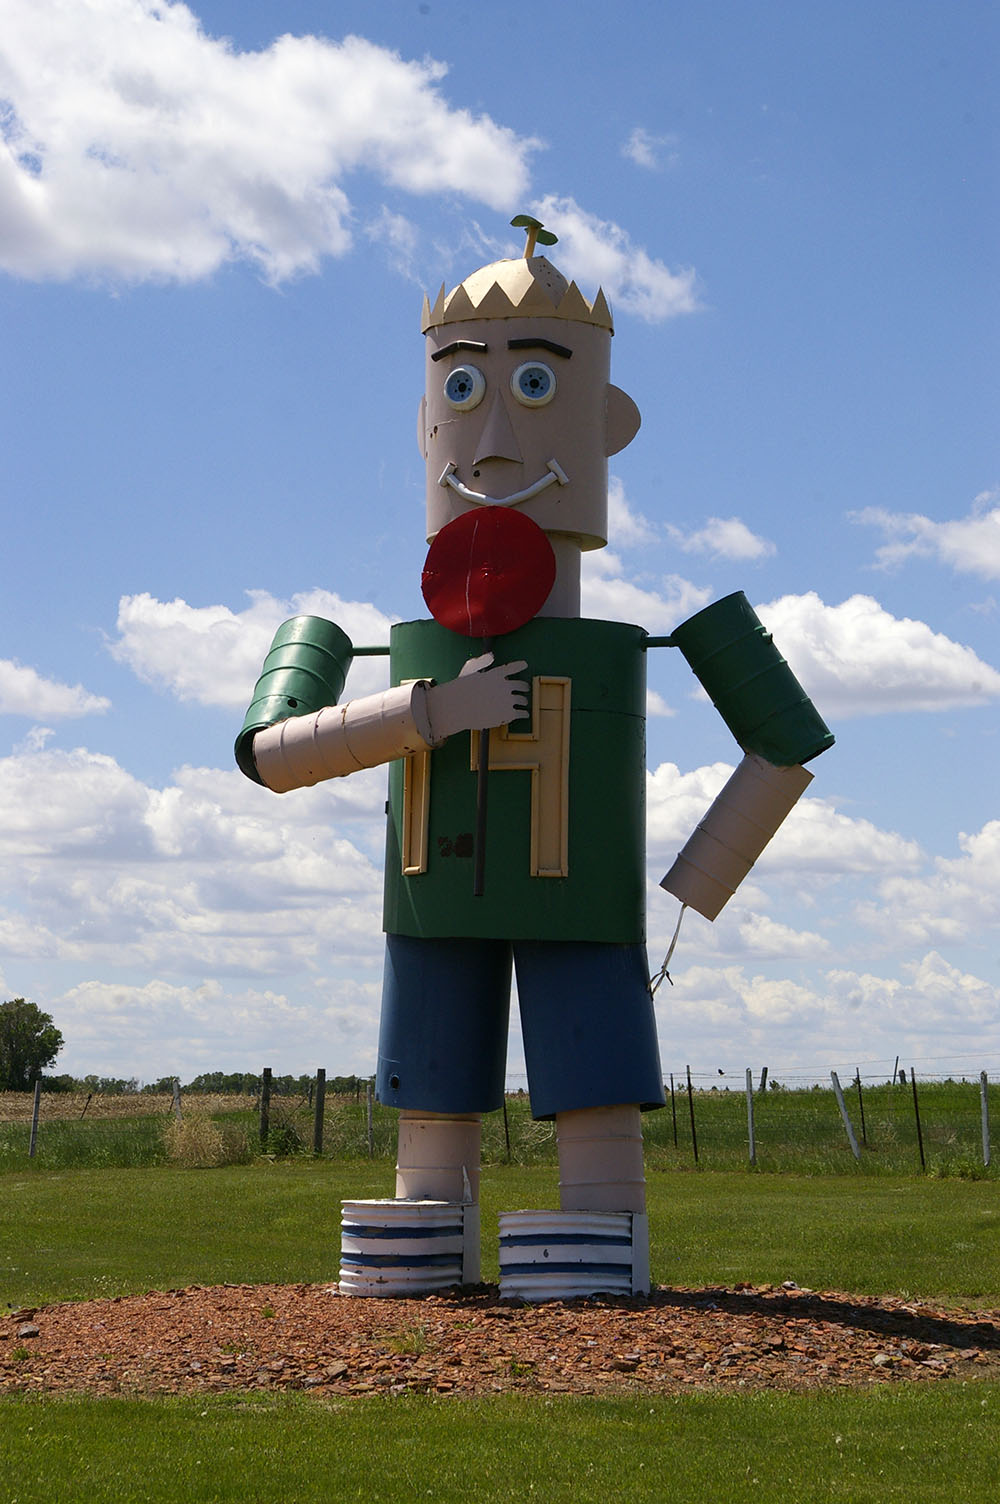 Large metal sculpture of a boy with a propellor hat licking a lollipop along the Enchanted Highway near Regent, North Dakota